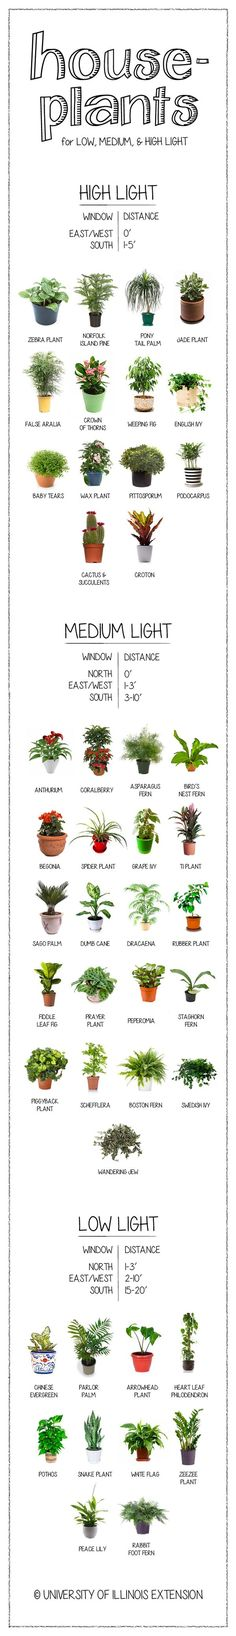 Houseplants for Low, Medium, & Bright Light